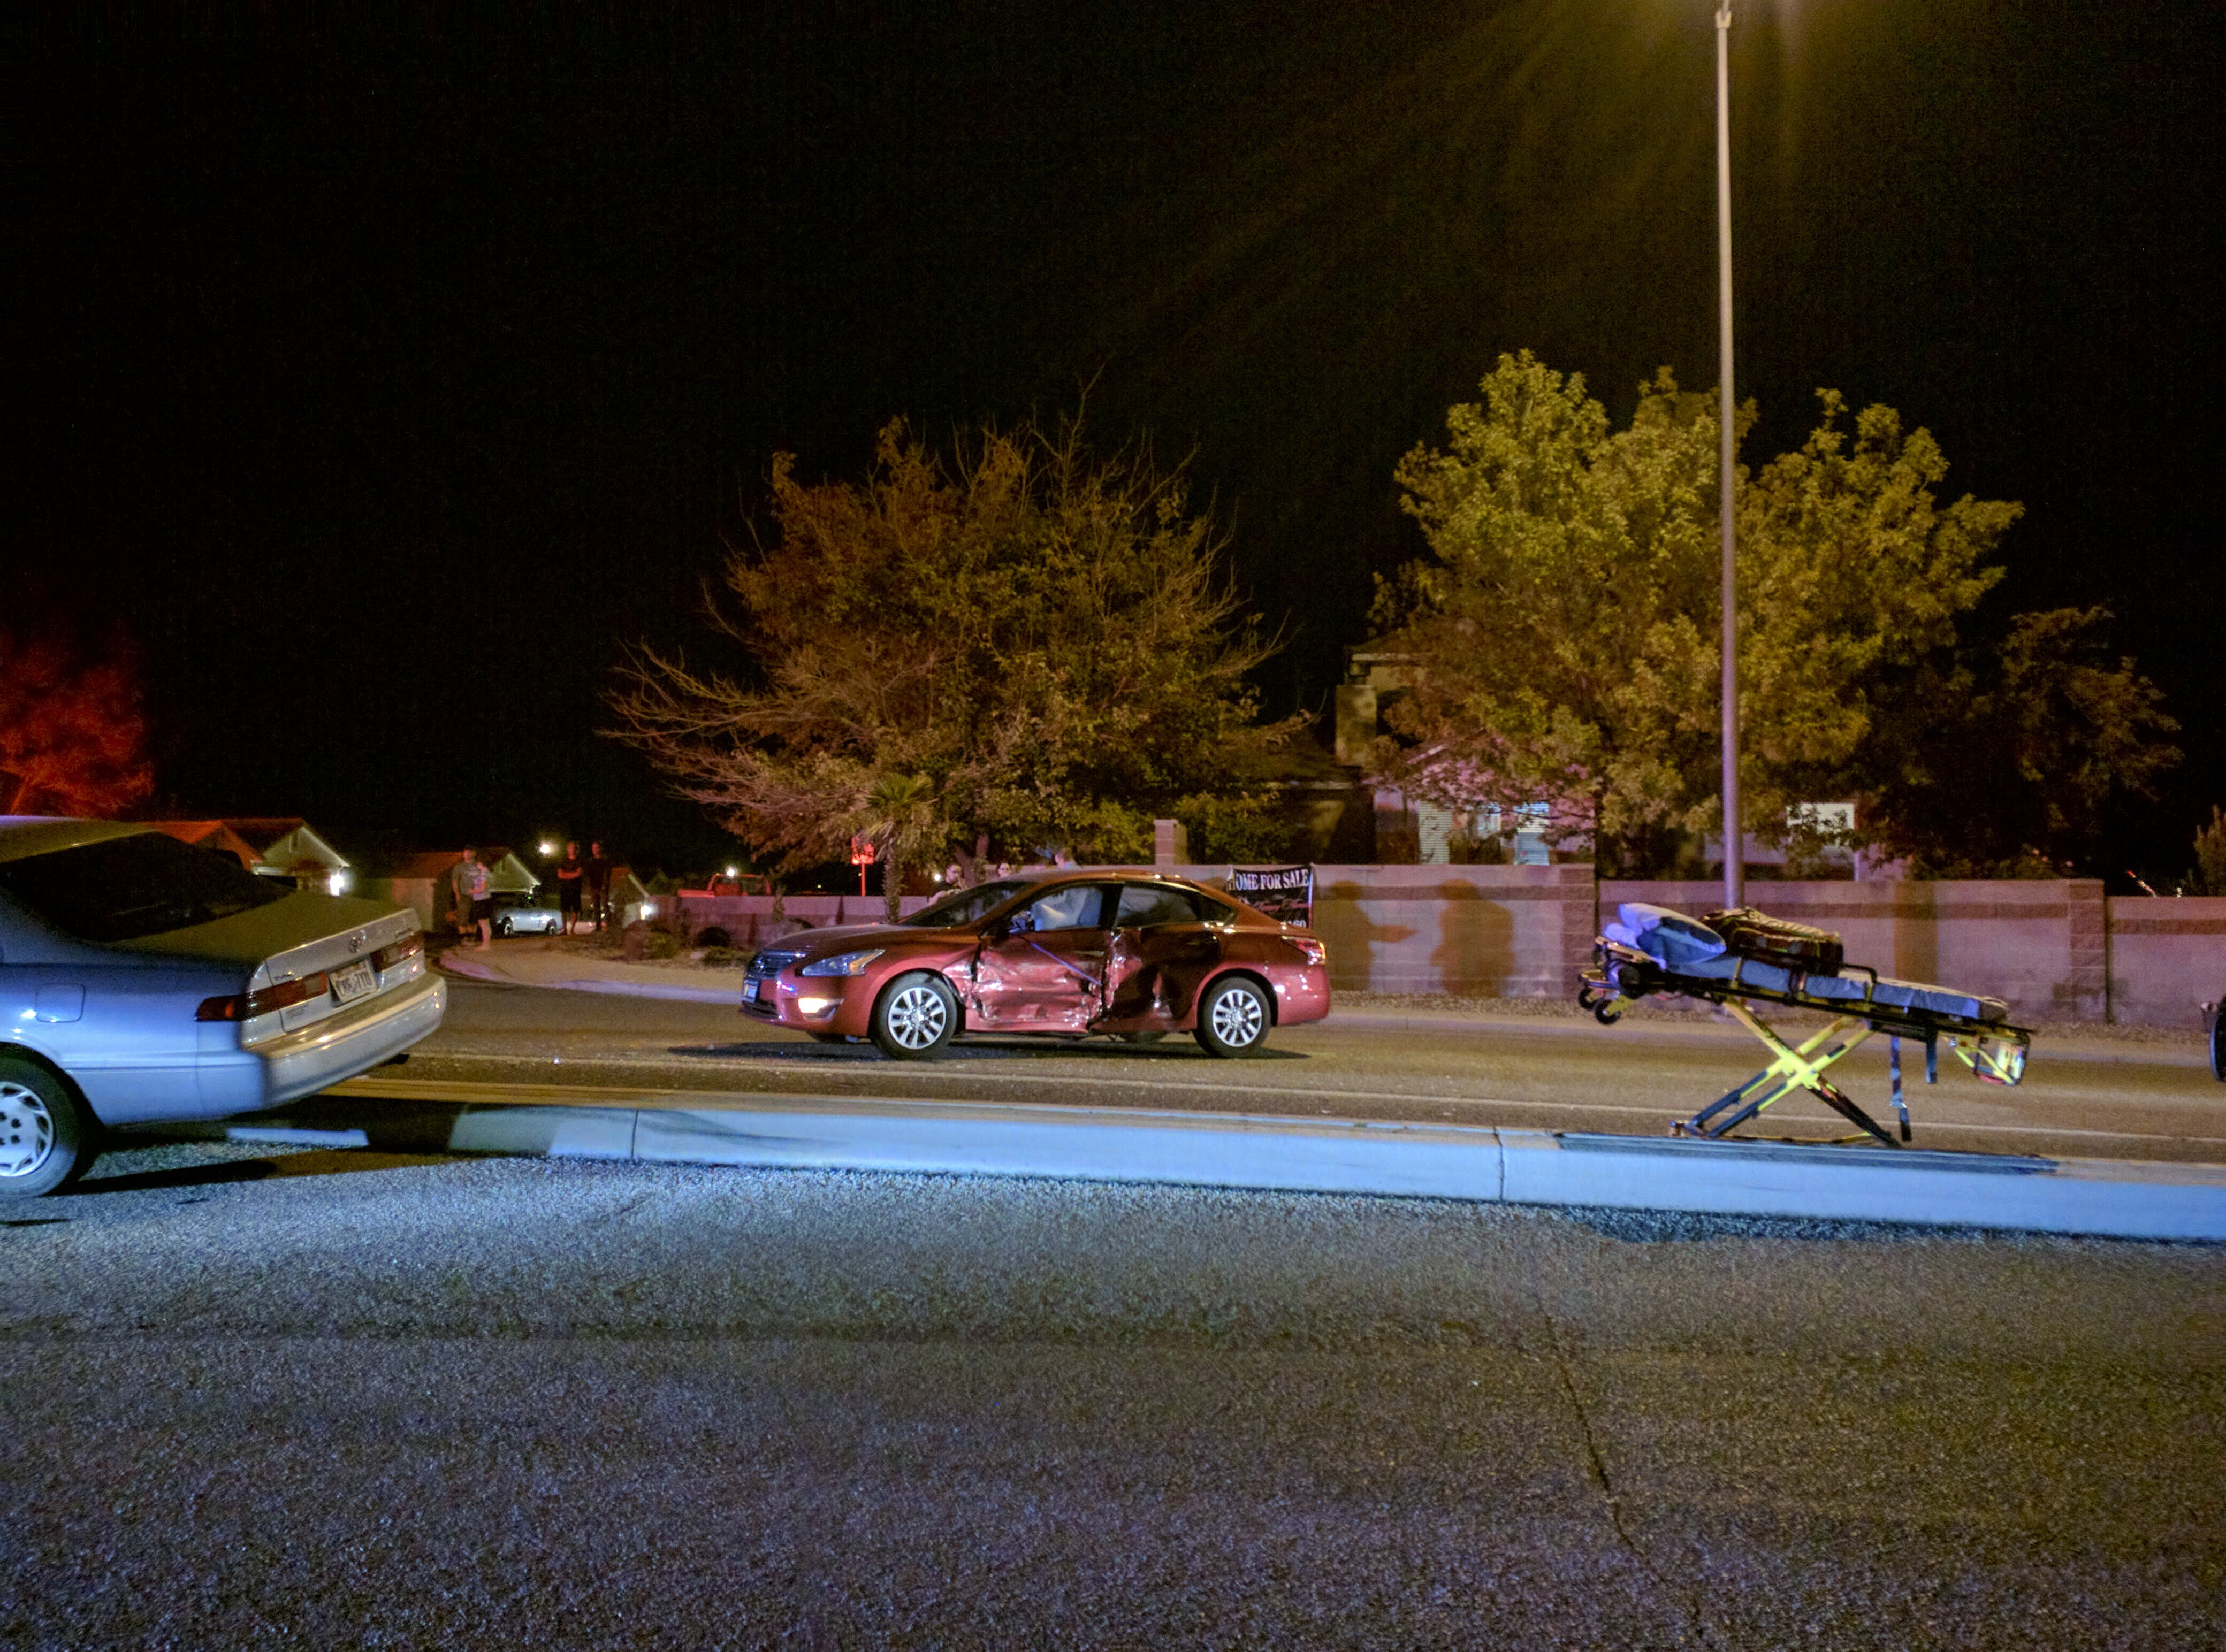 A Nissan Altima is heavily damaged in a collision resulting from a failure to stop at a stop sign, St. George, Utah, Dec. 11, 2016   Photo by Joseph Witham, St. George News